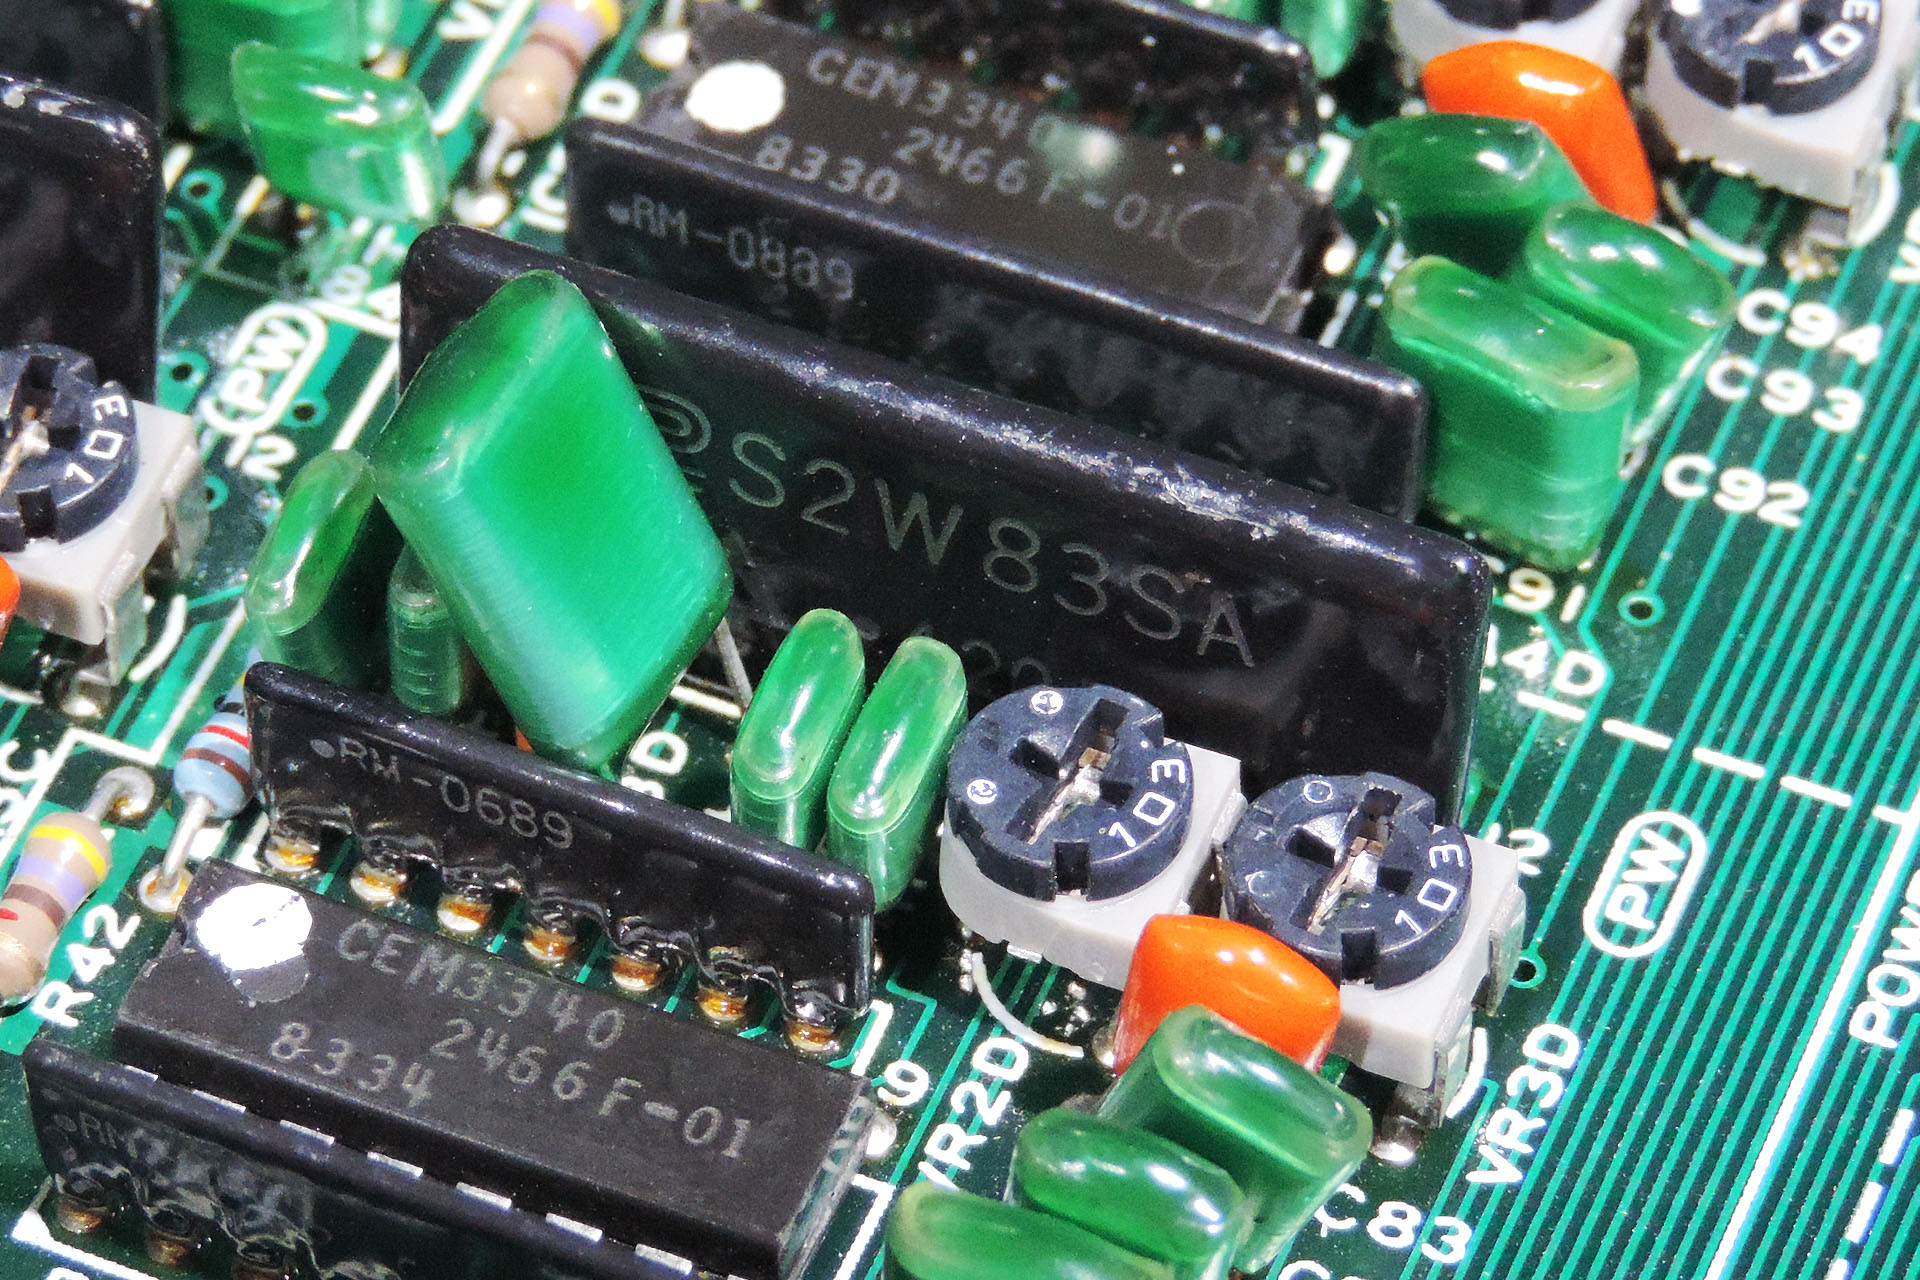 The famous CEM3340 and Roland EHM-S226W83S partnership in the MKS-80 Rev 4